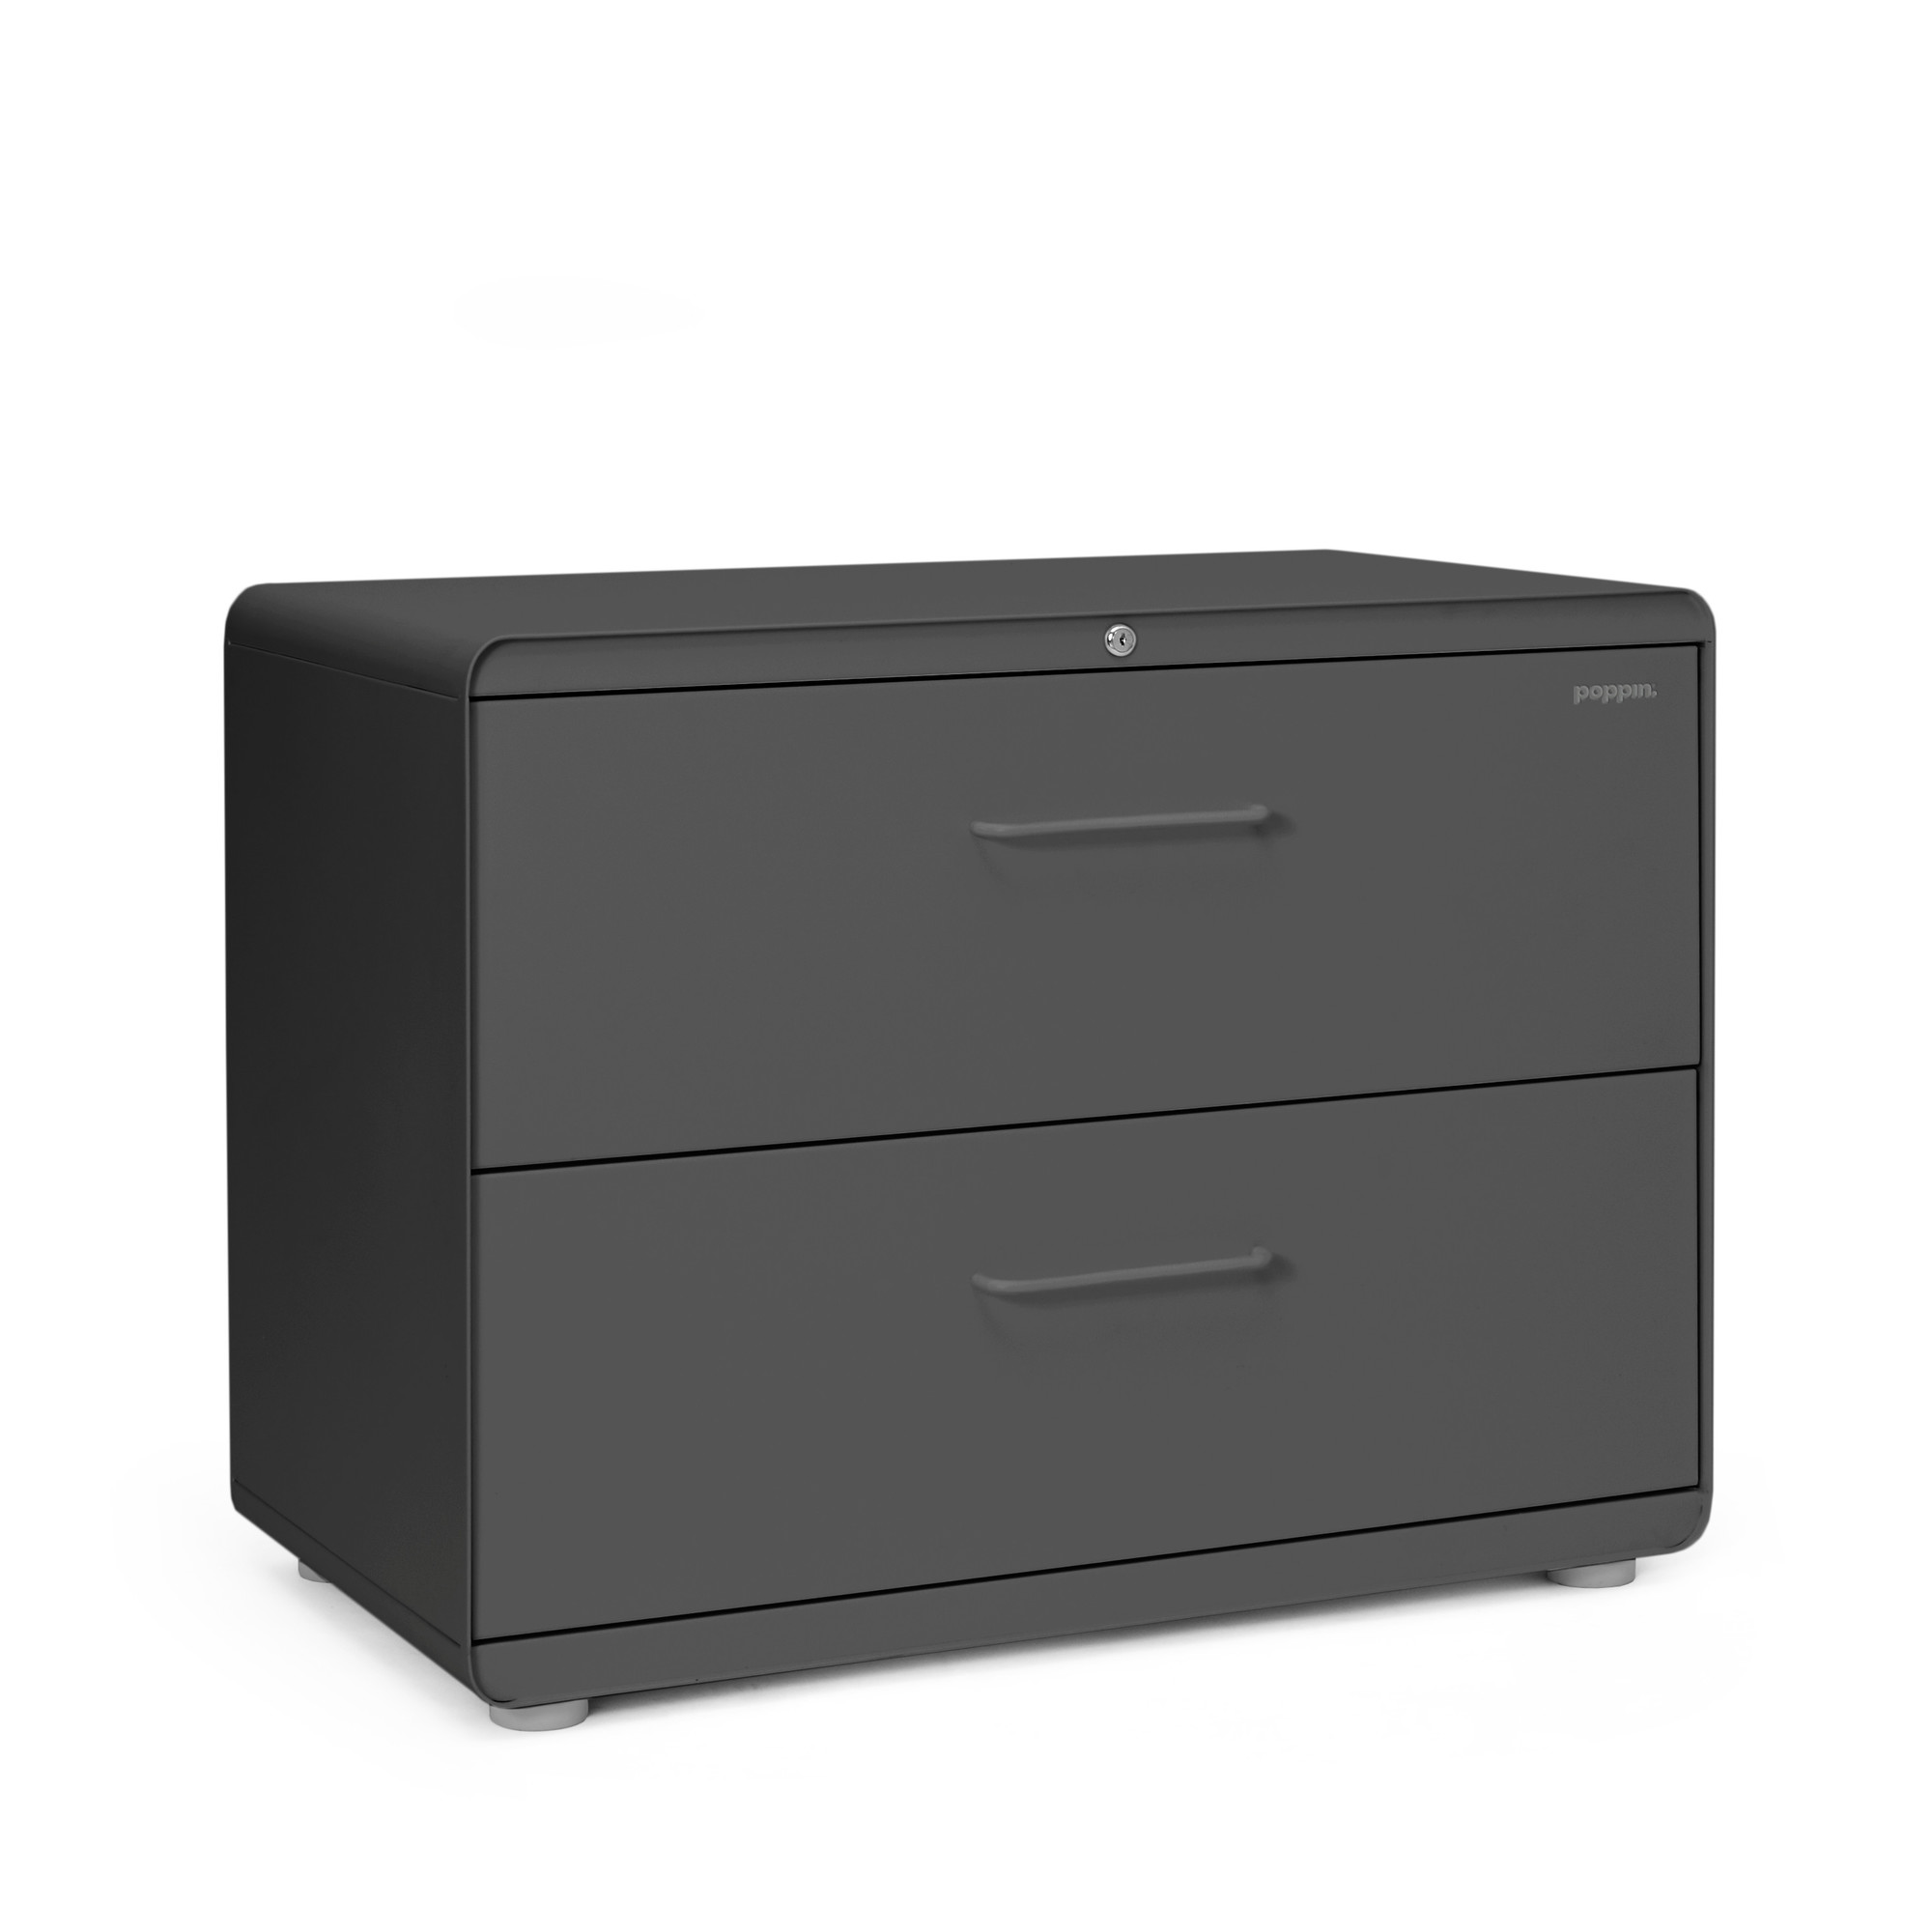 Charcoal Stow 2 Drawer Lateral File Cabinet,Charcoal,hi Res. Loading Zoom